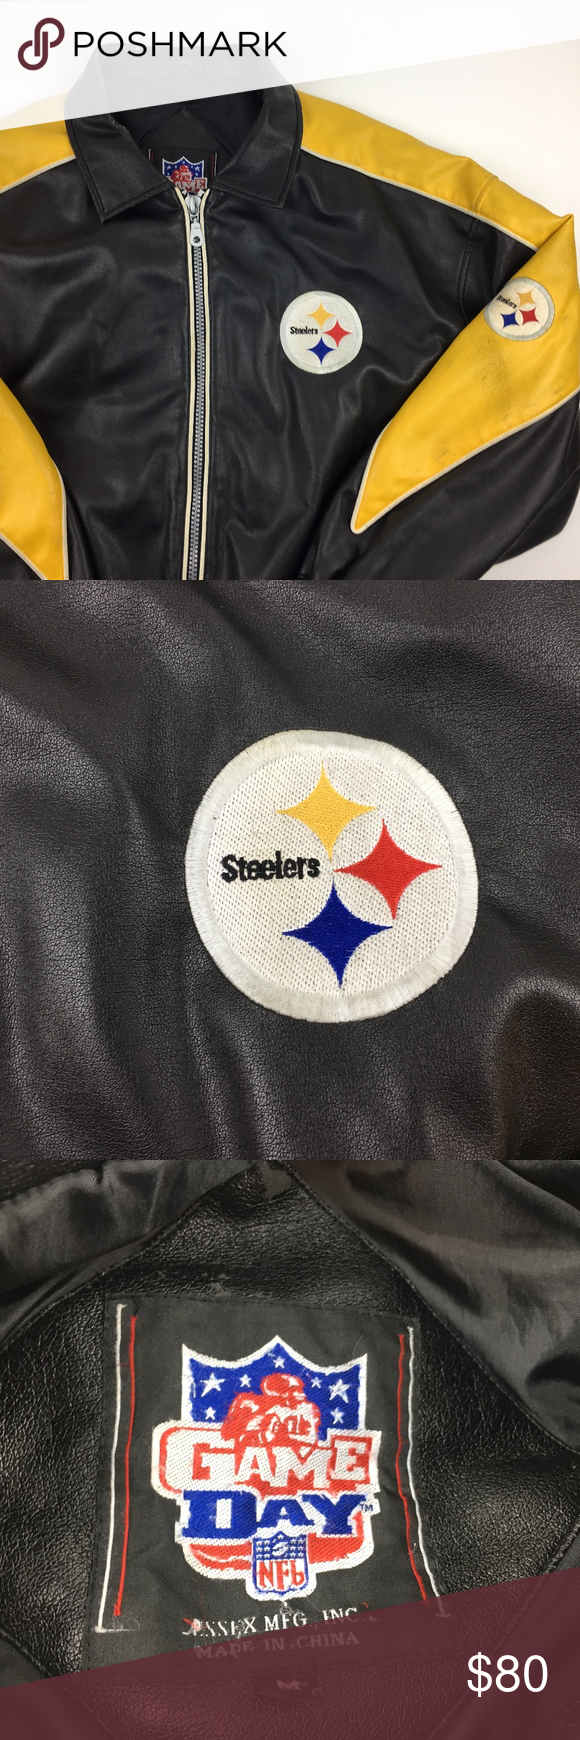 Pittsburgh Steelers Game Day Leather Zip Up Jacket Jackets